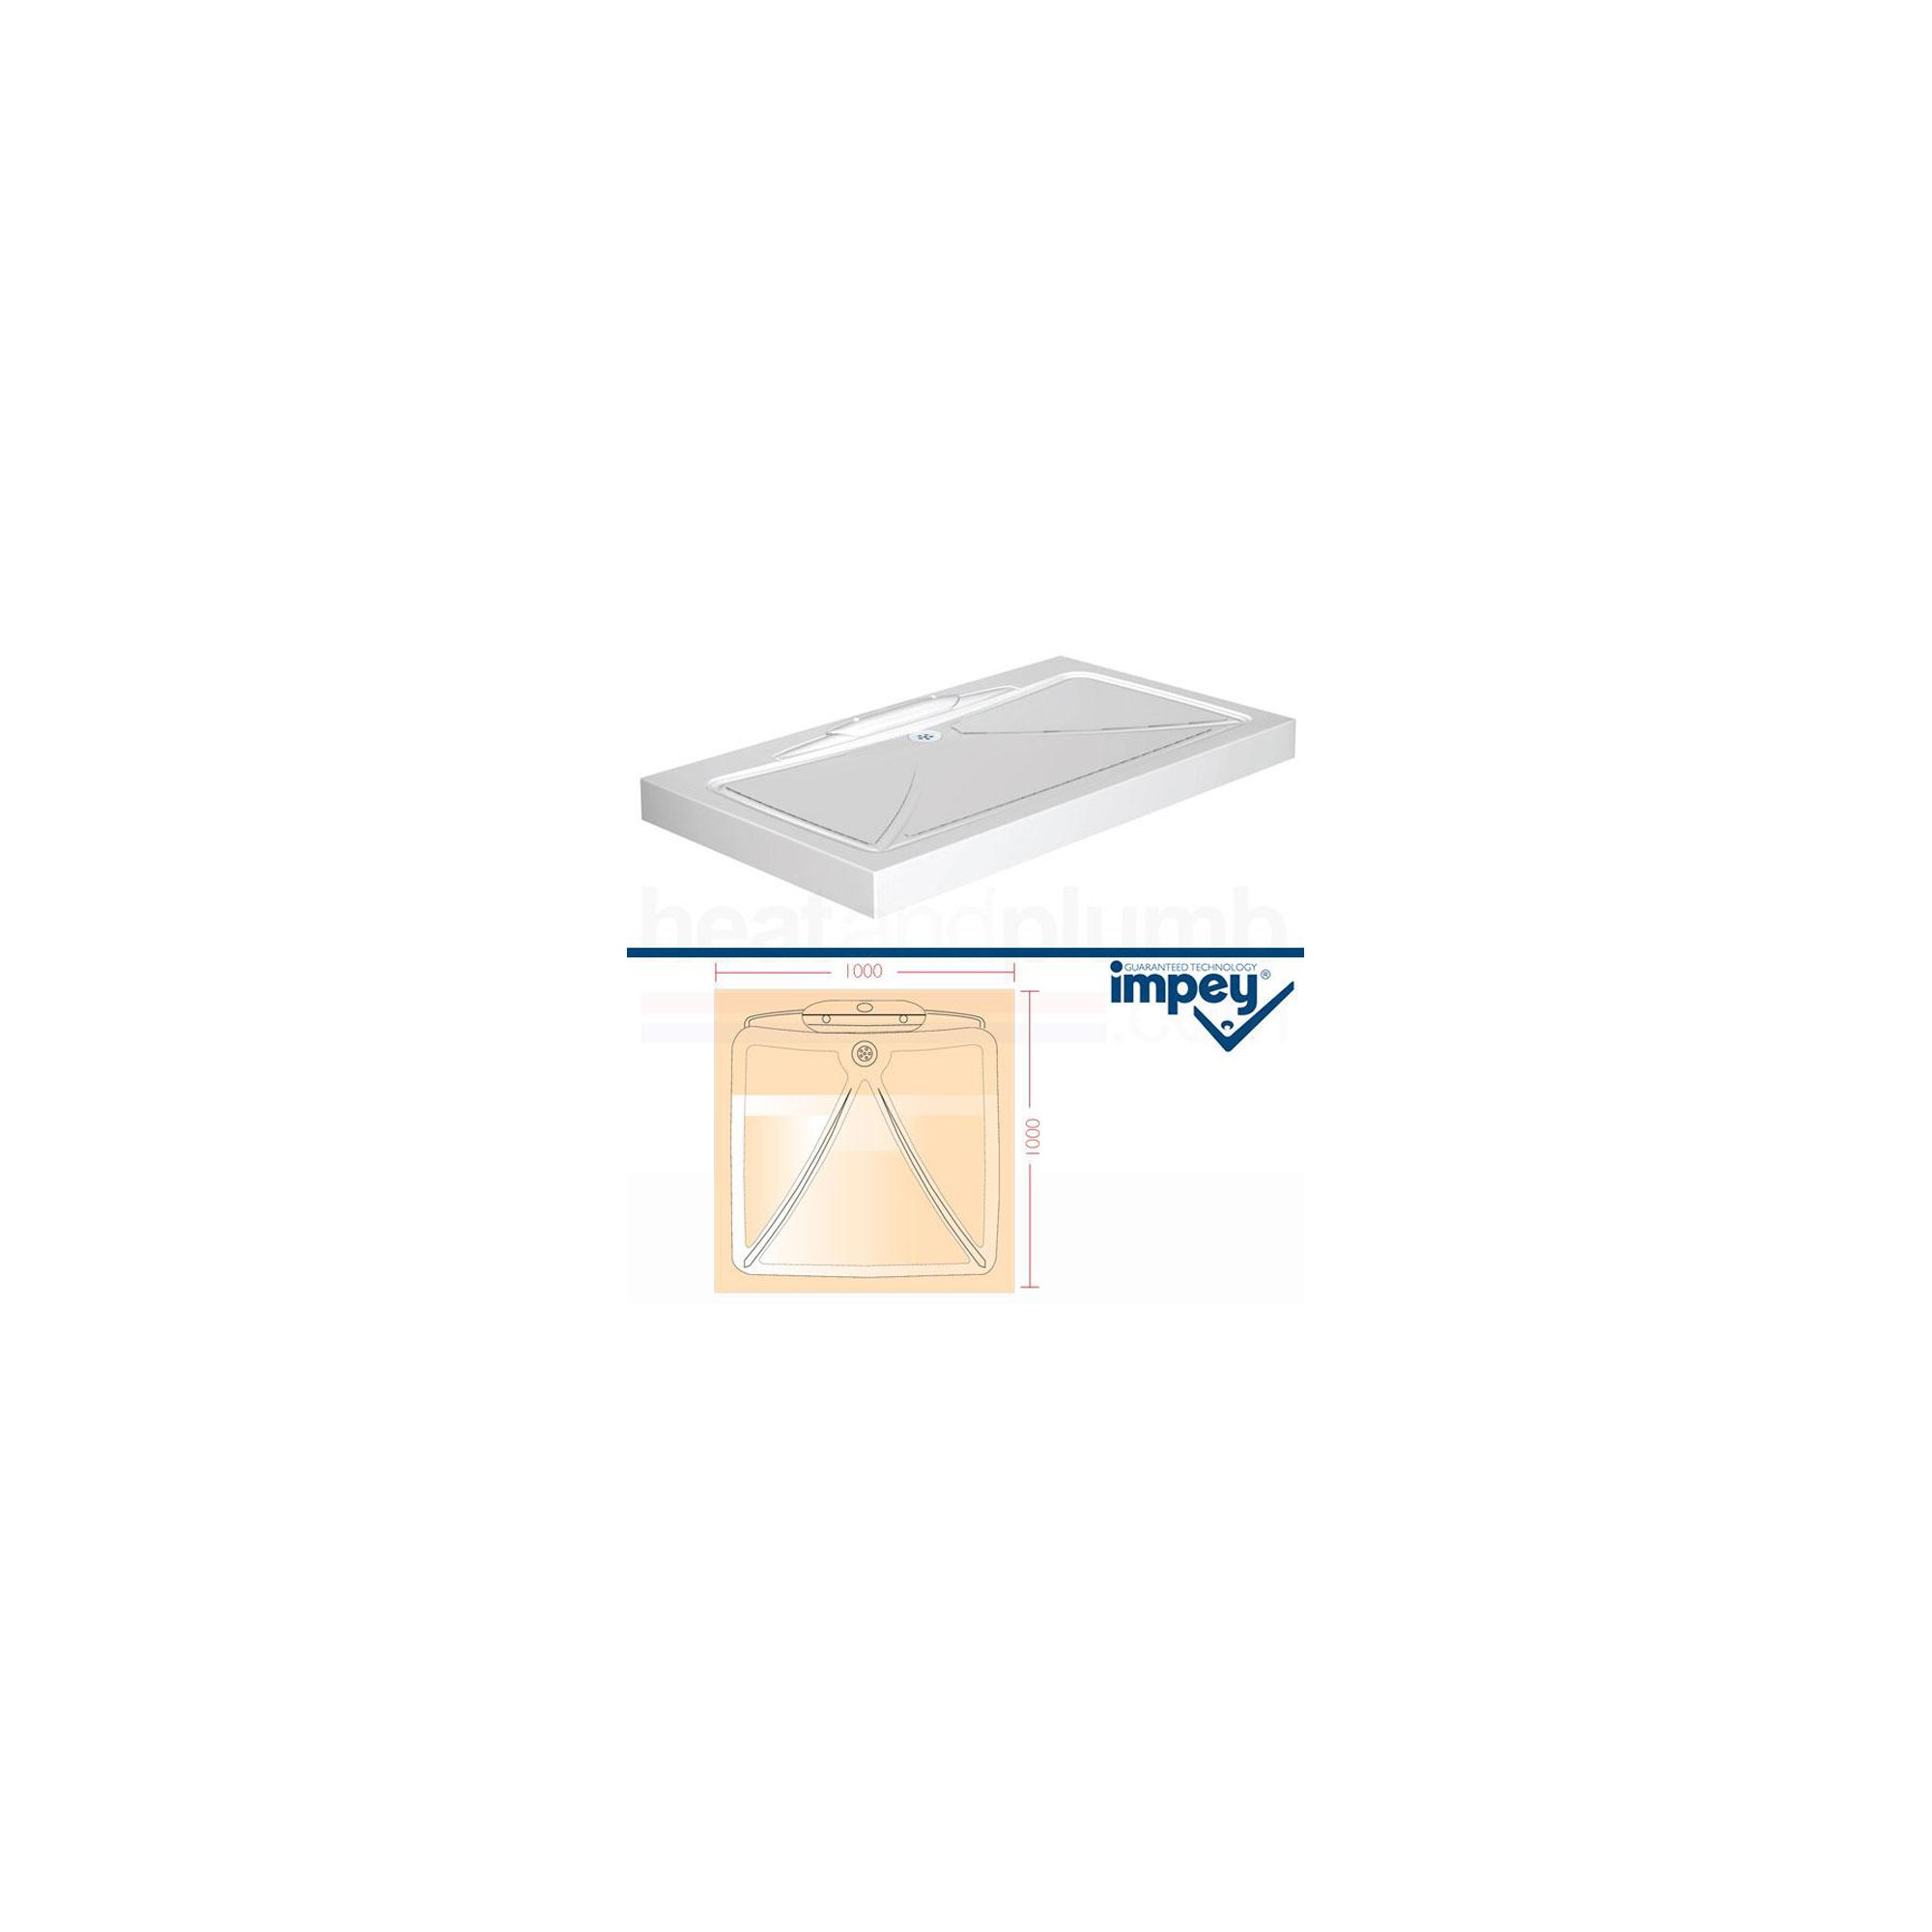 Impey Mendip Shower Tray 1000mm x 1000mm at Tesco Direct